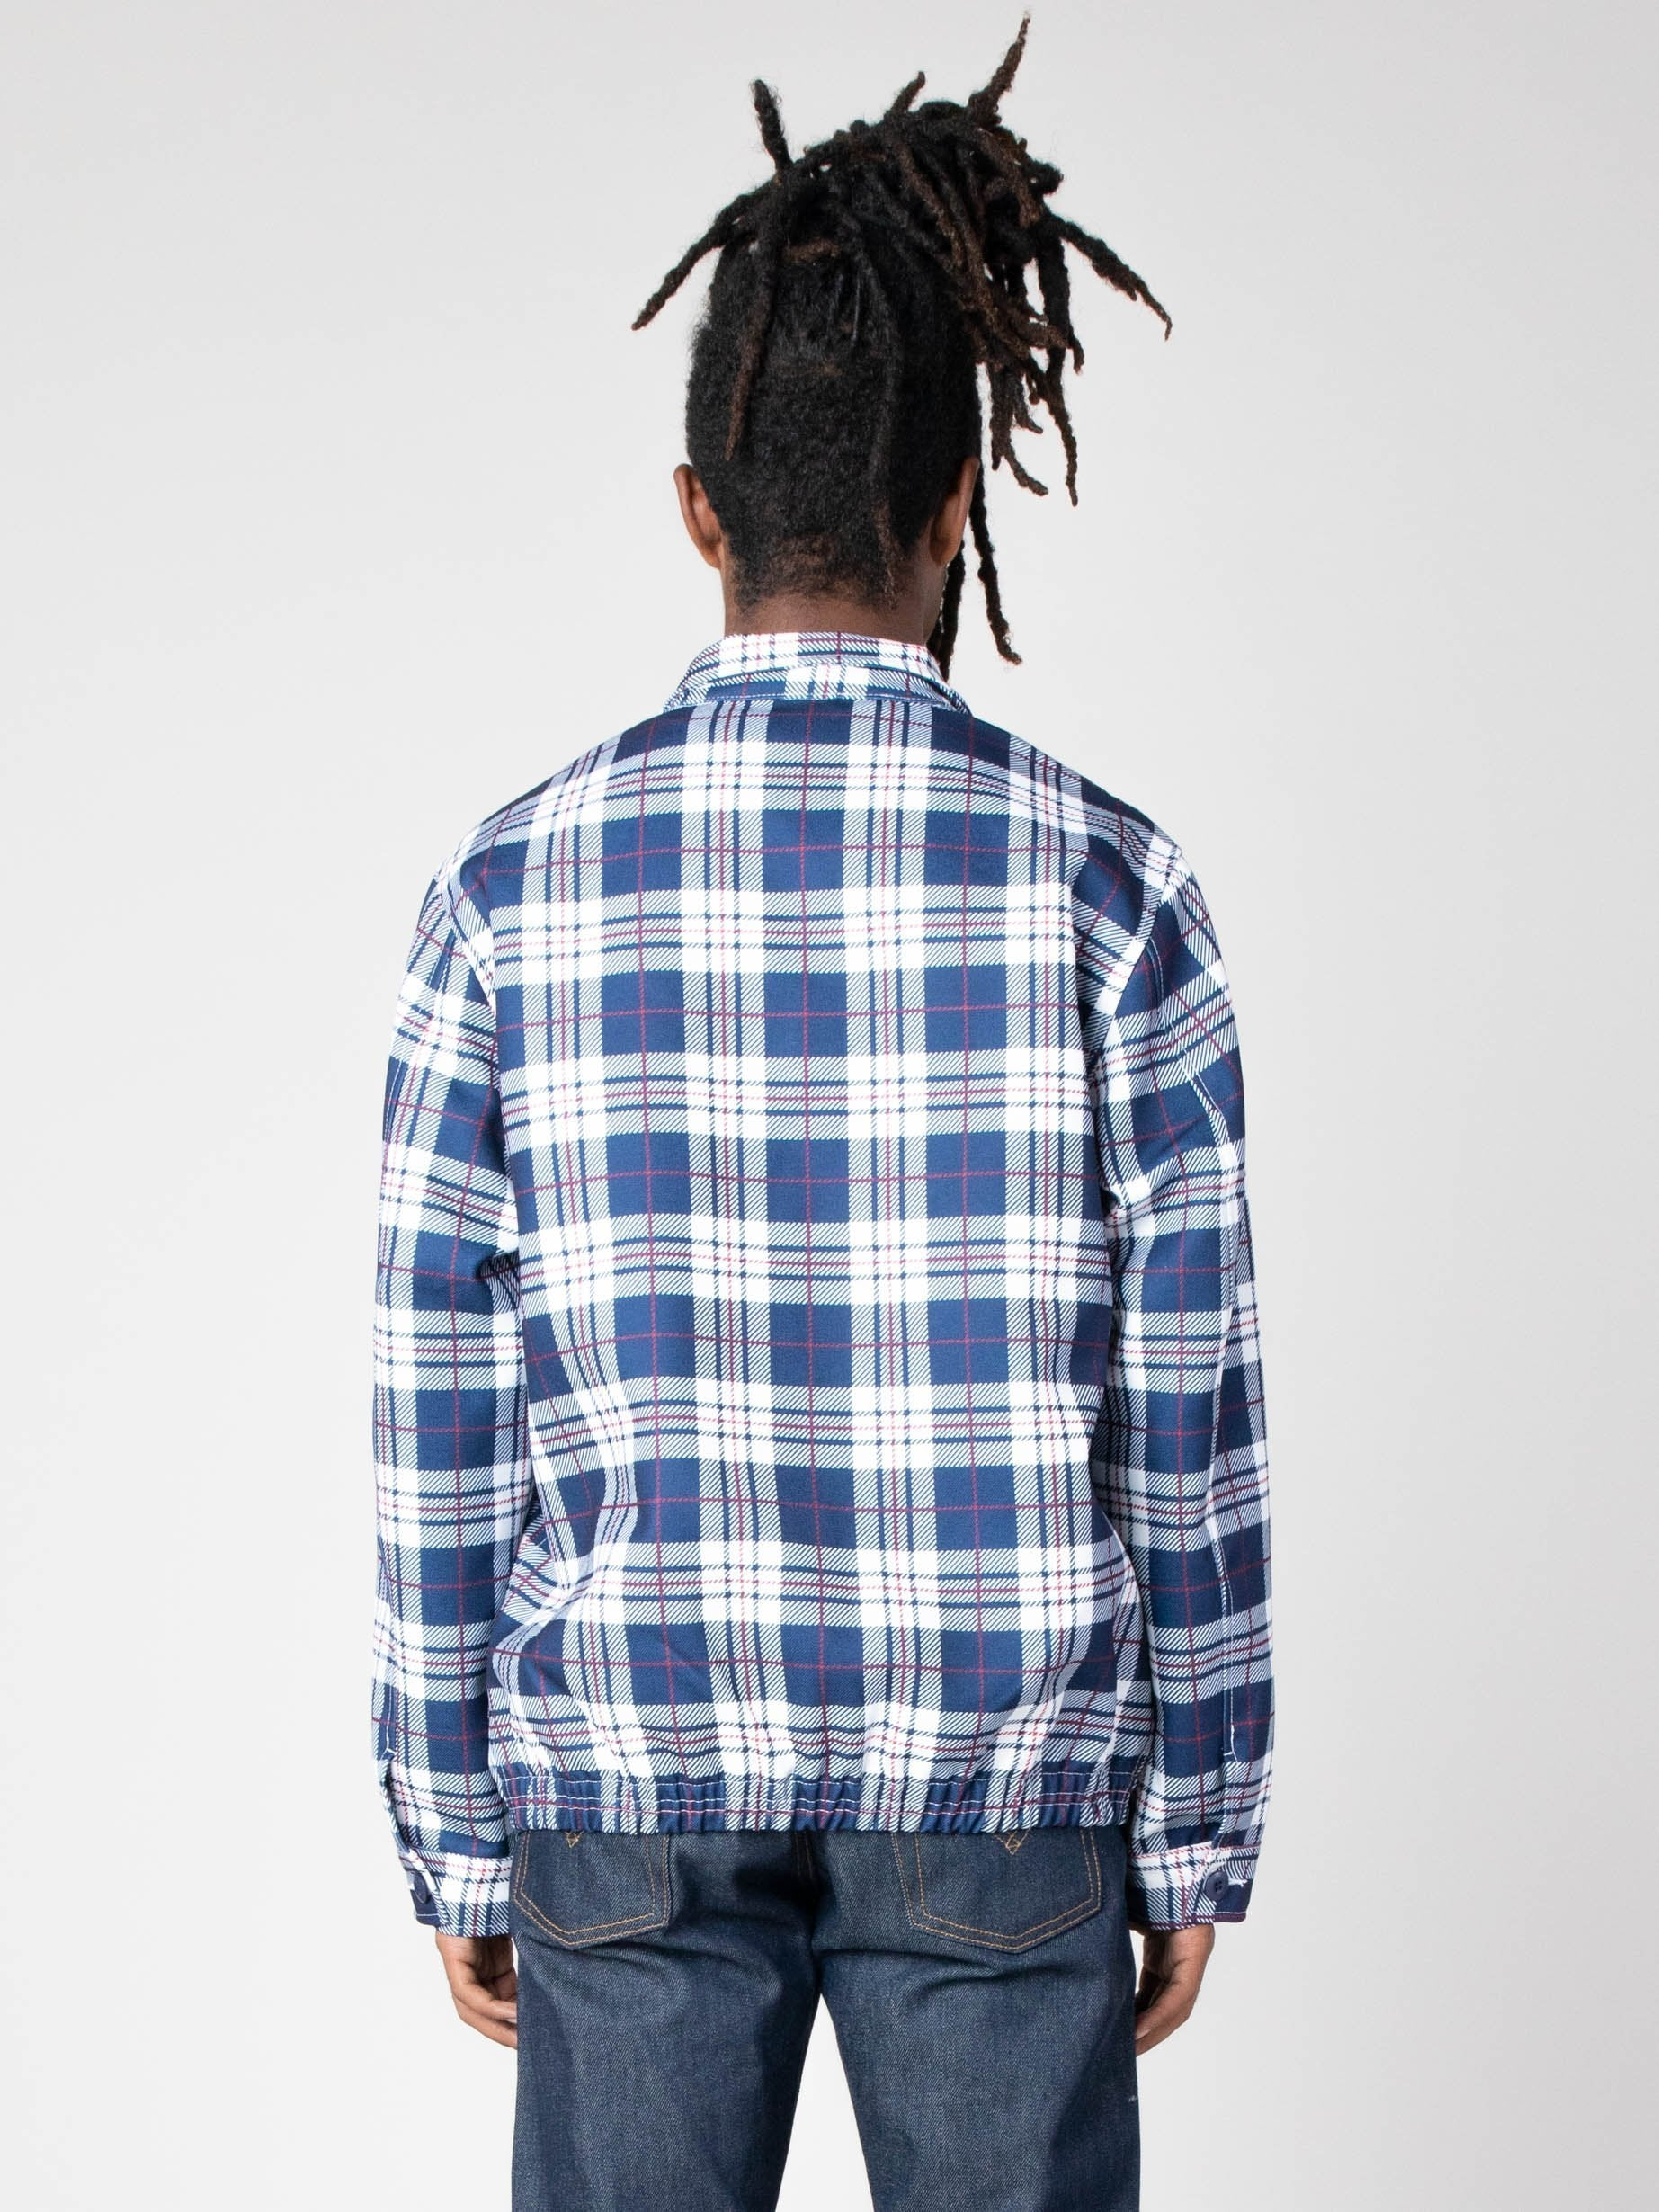 Navy/White Picture Perfect Tartan Jacket 6